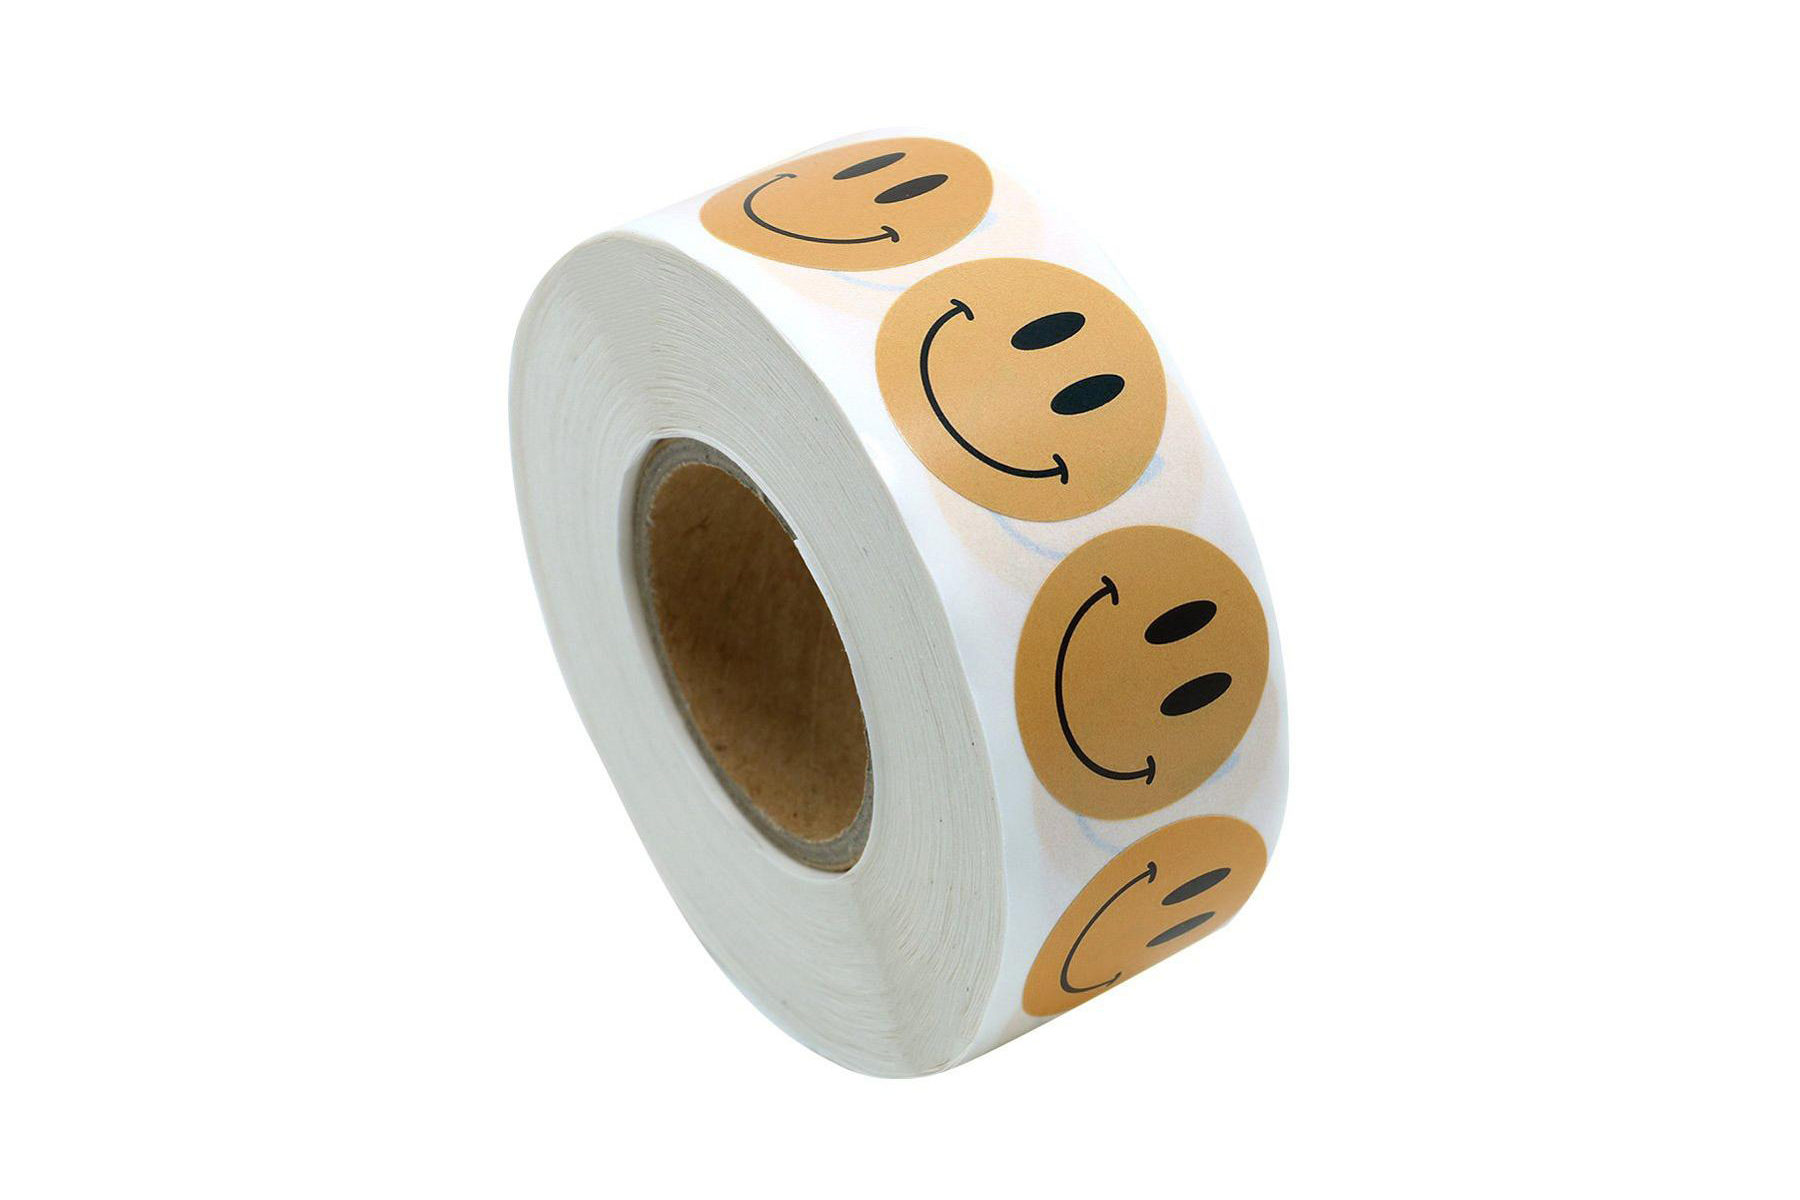 Roll of Smiley Sticker Lablels